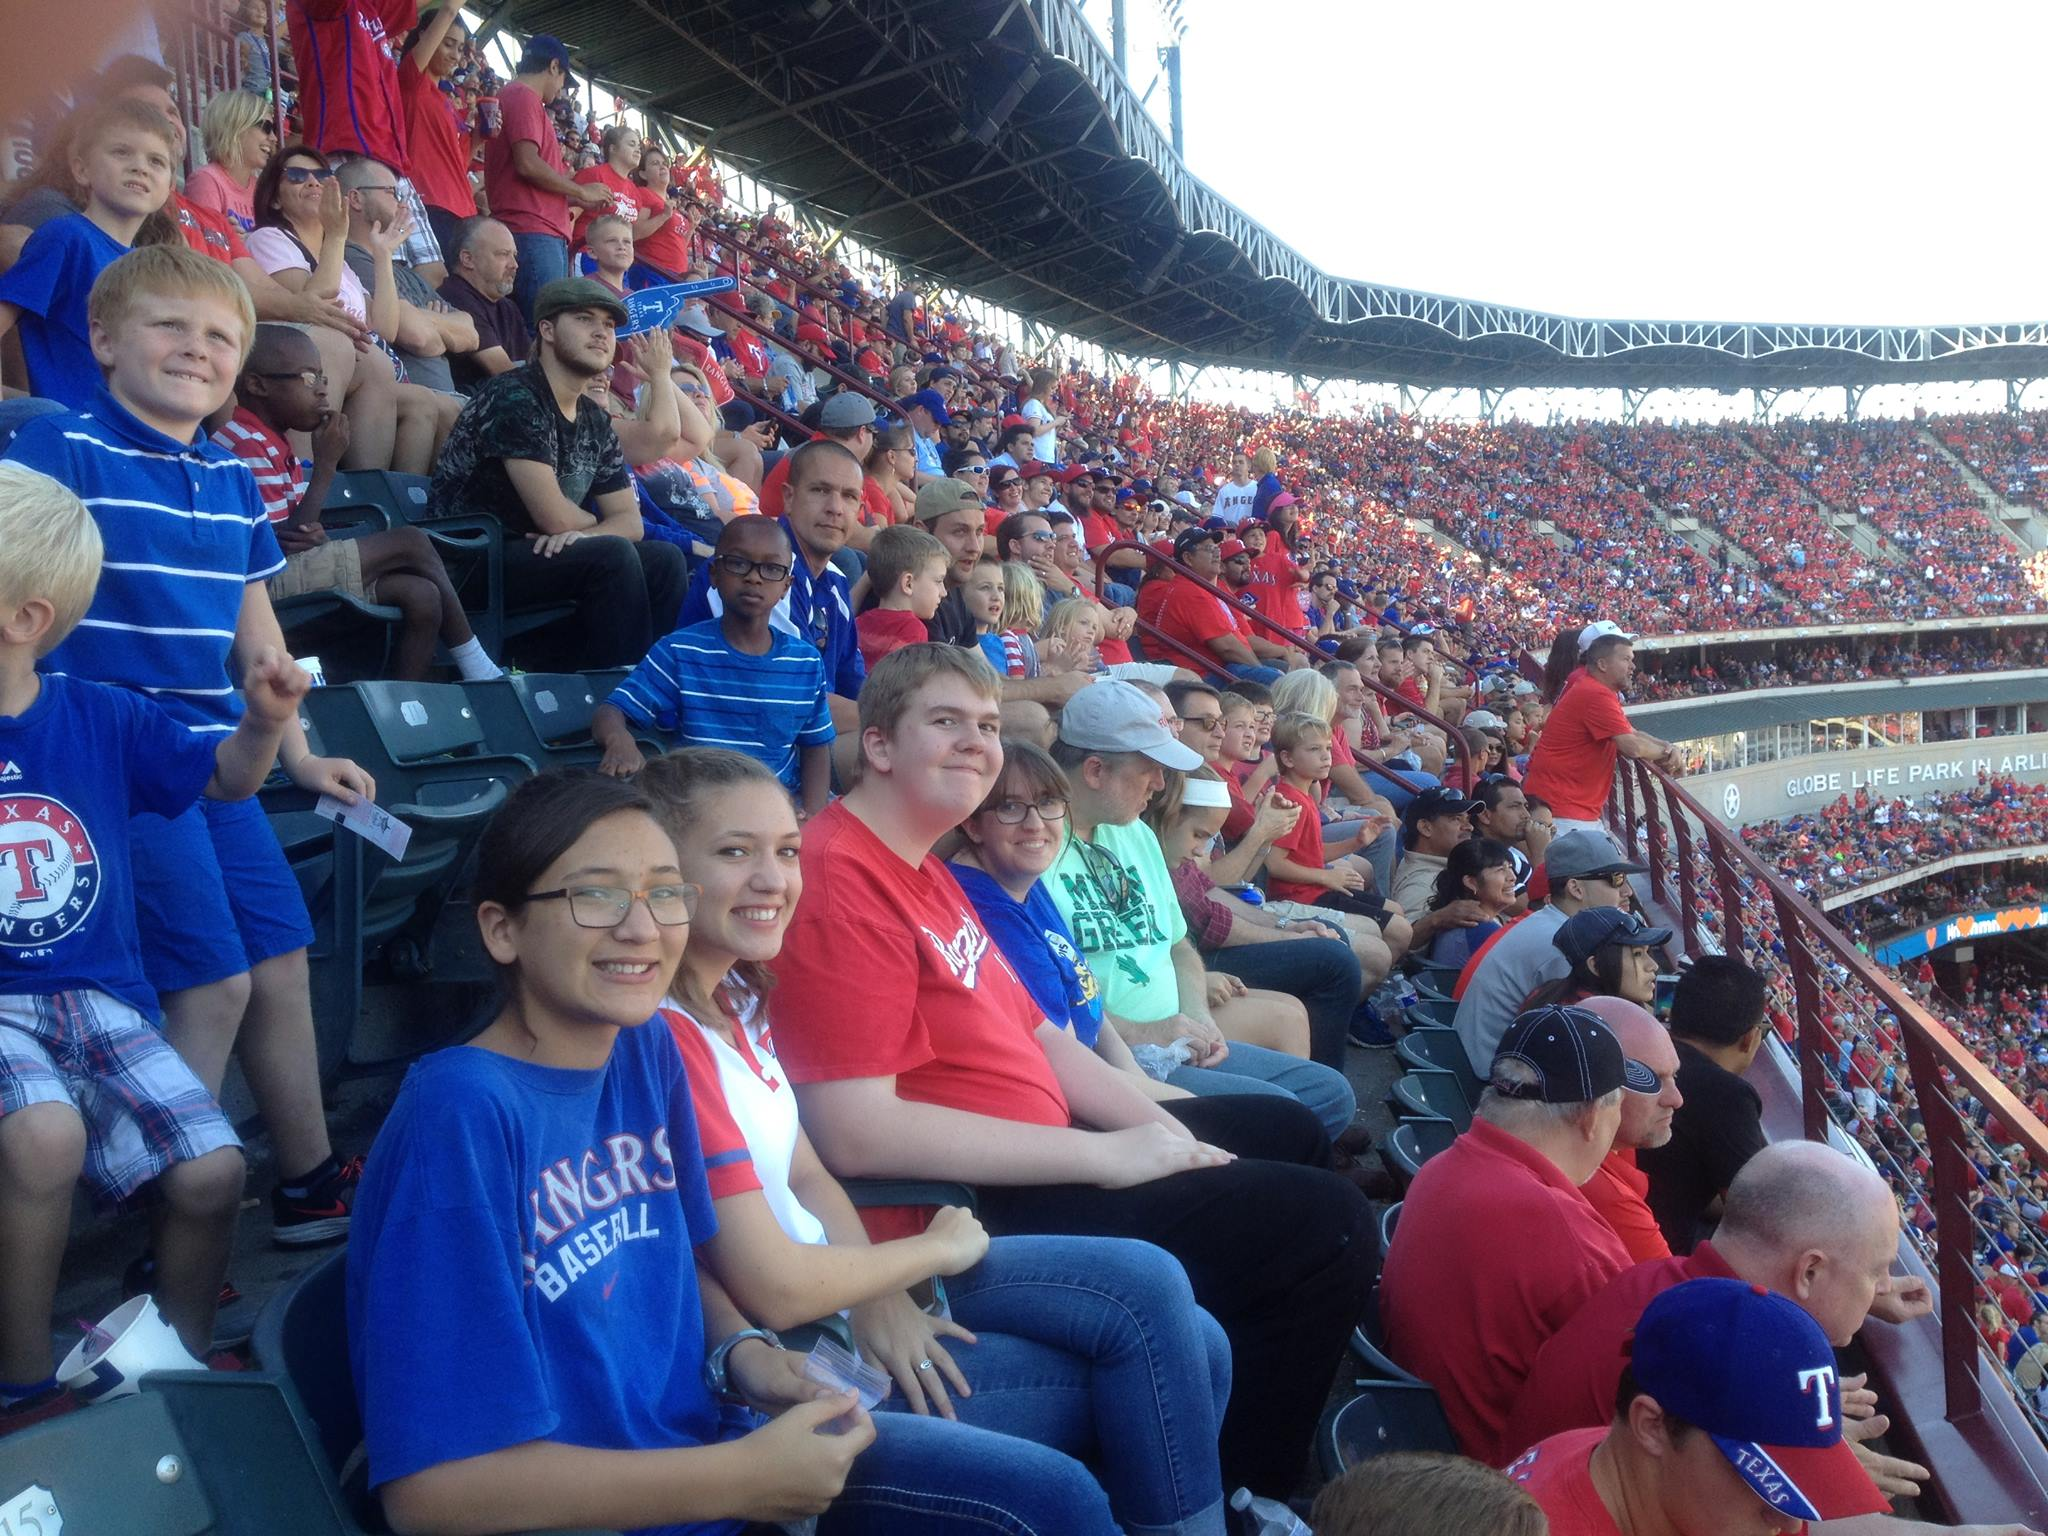 The Rockwall Pres Annual ManTime Father/Child Rangers Game.